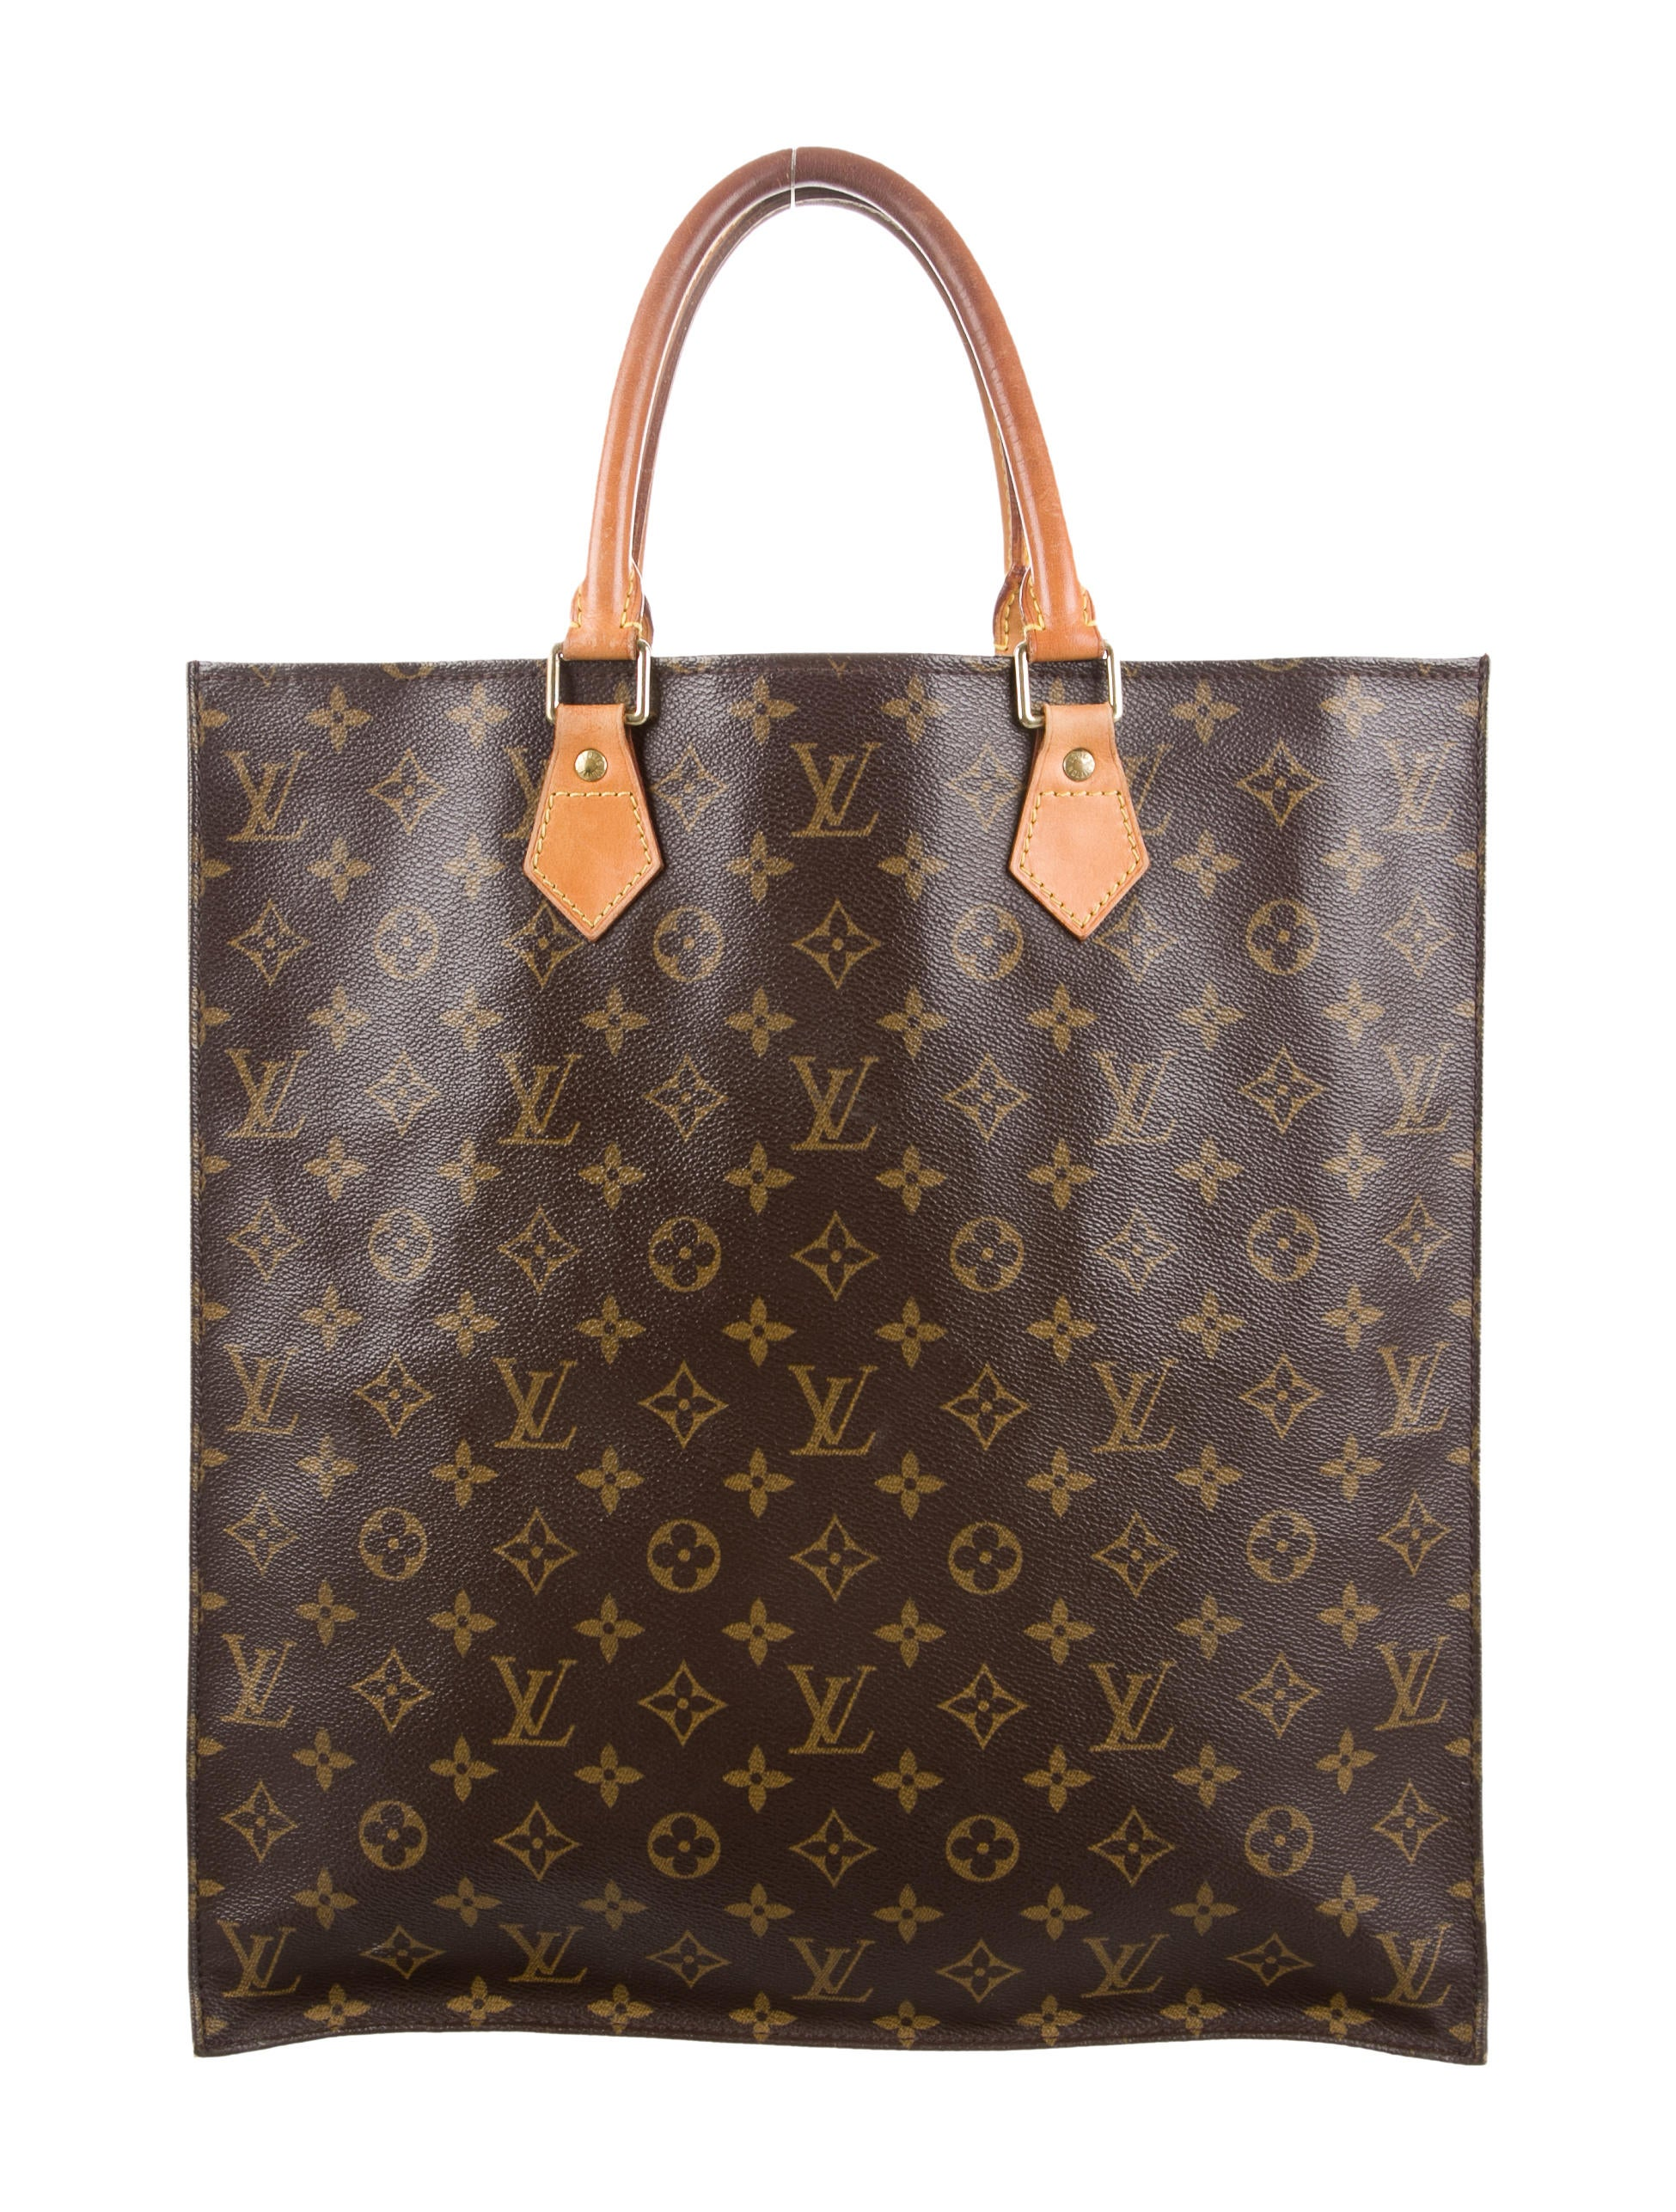 Louis vuitton monogram sac plat handbags lou98810 for Louis vuitton monogram miroir sac plat